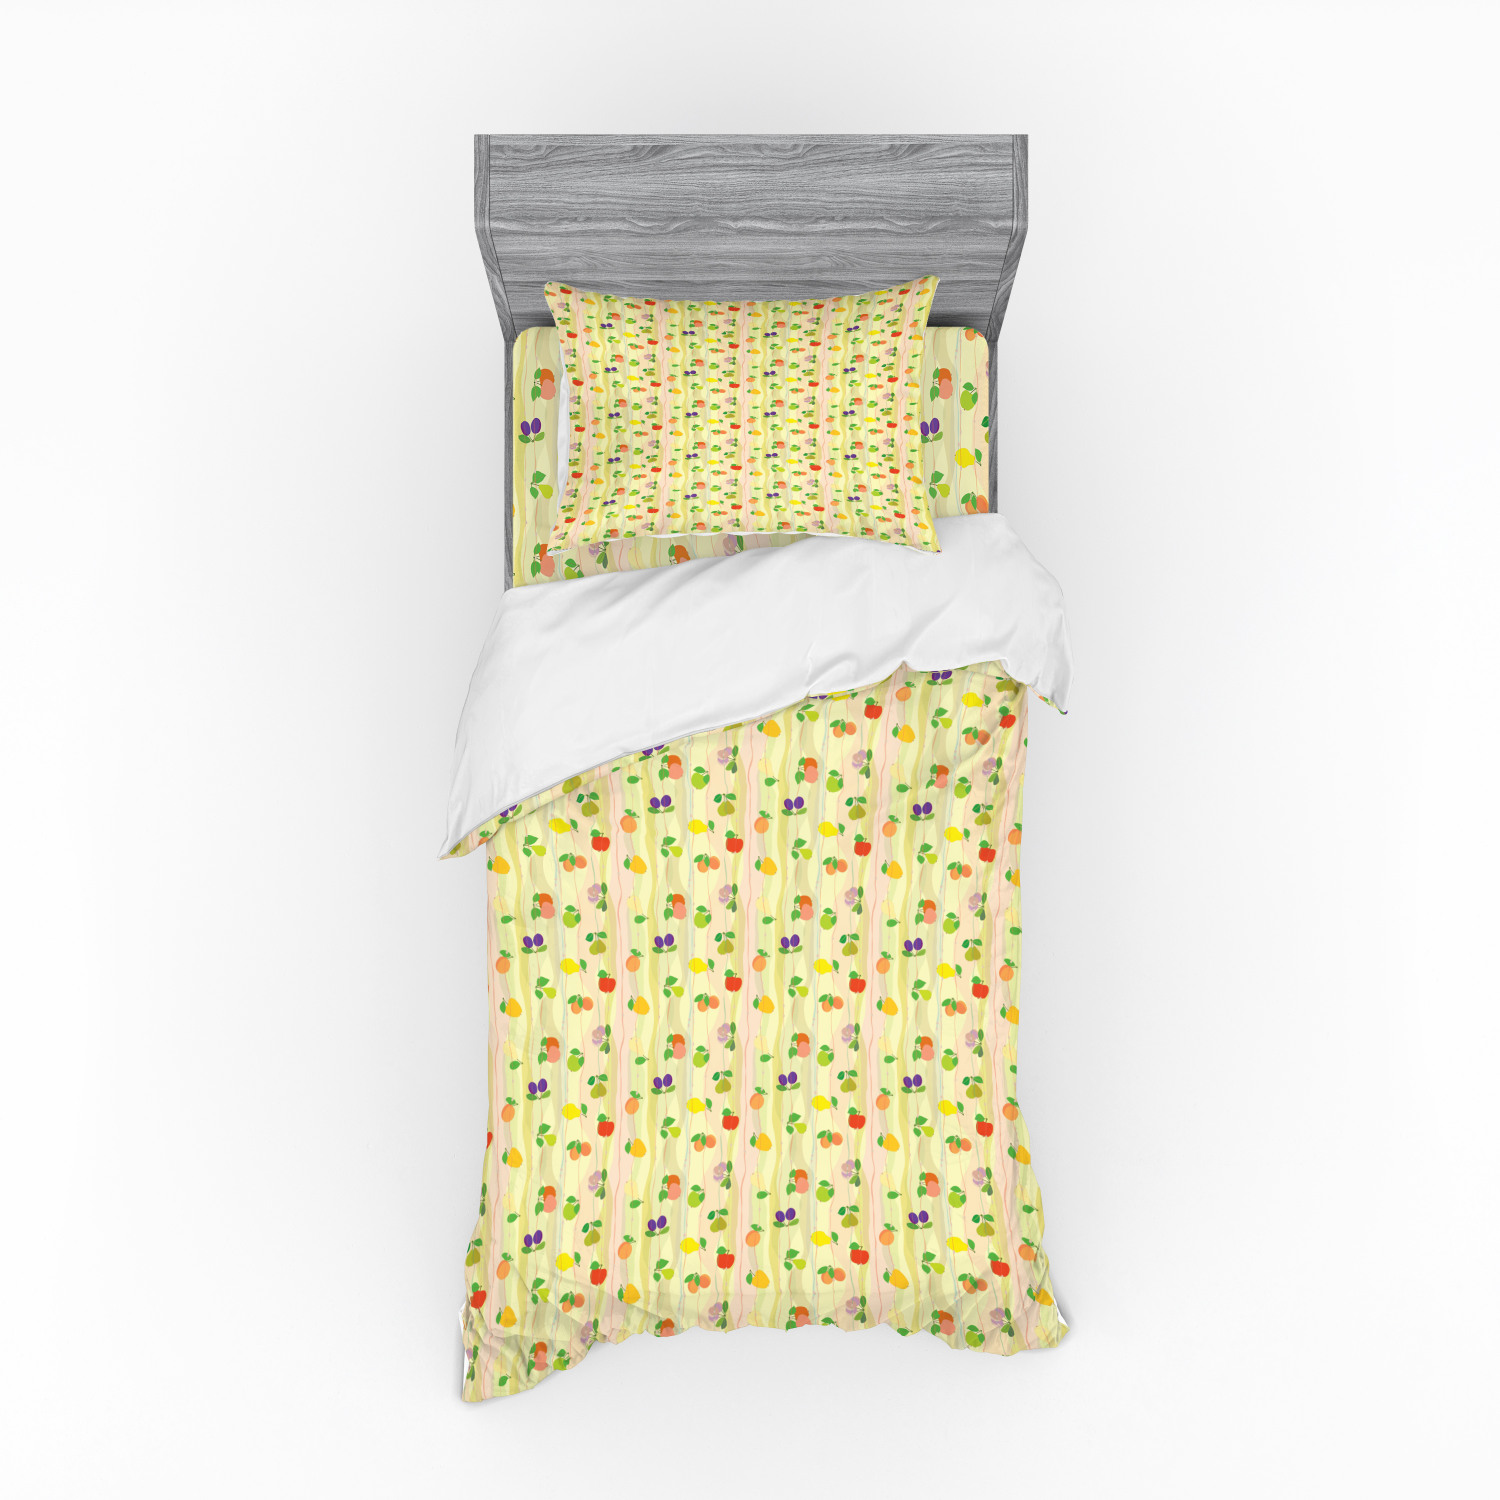 fruit duvet cover set apple plum pear apricot peach pattern on abstract geometric waves background print bedding set with shams and fitted sheet 3 sizes by ambesonne walmart com fruit duvet cover set apple plum pear apricot peach pattern on abstract geometric waves background print bedding set with shams and fitted sheet 3